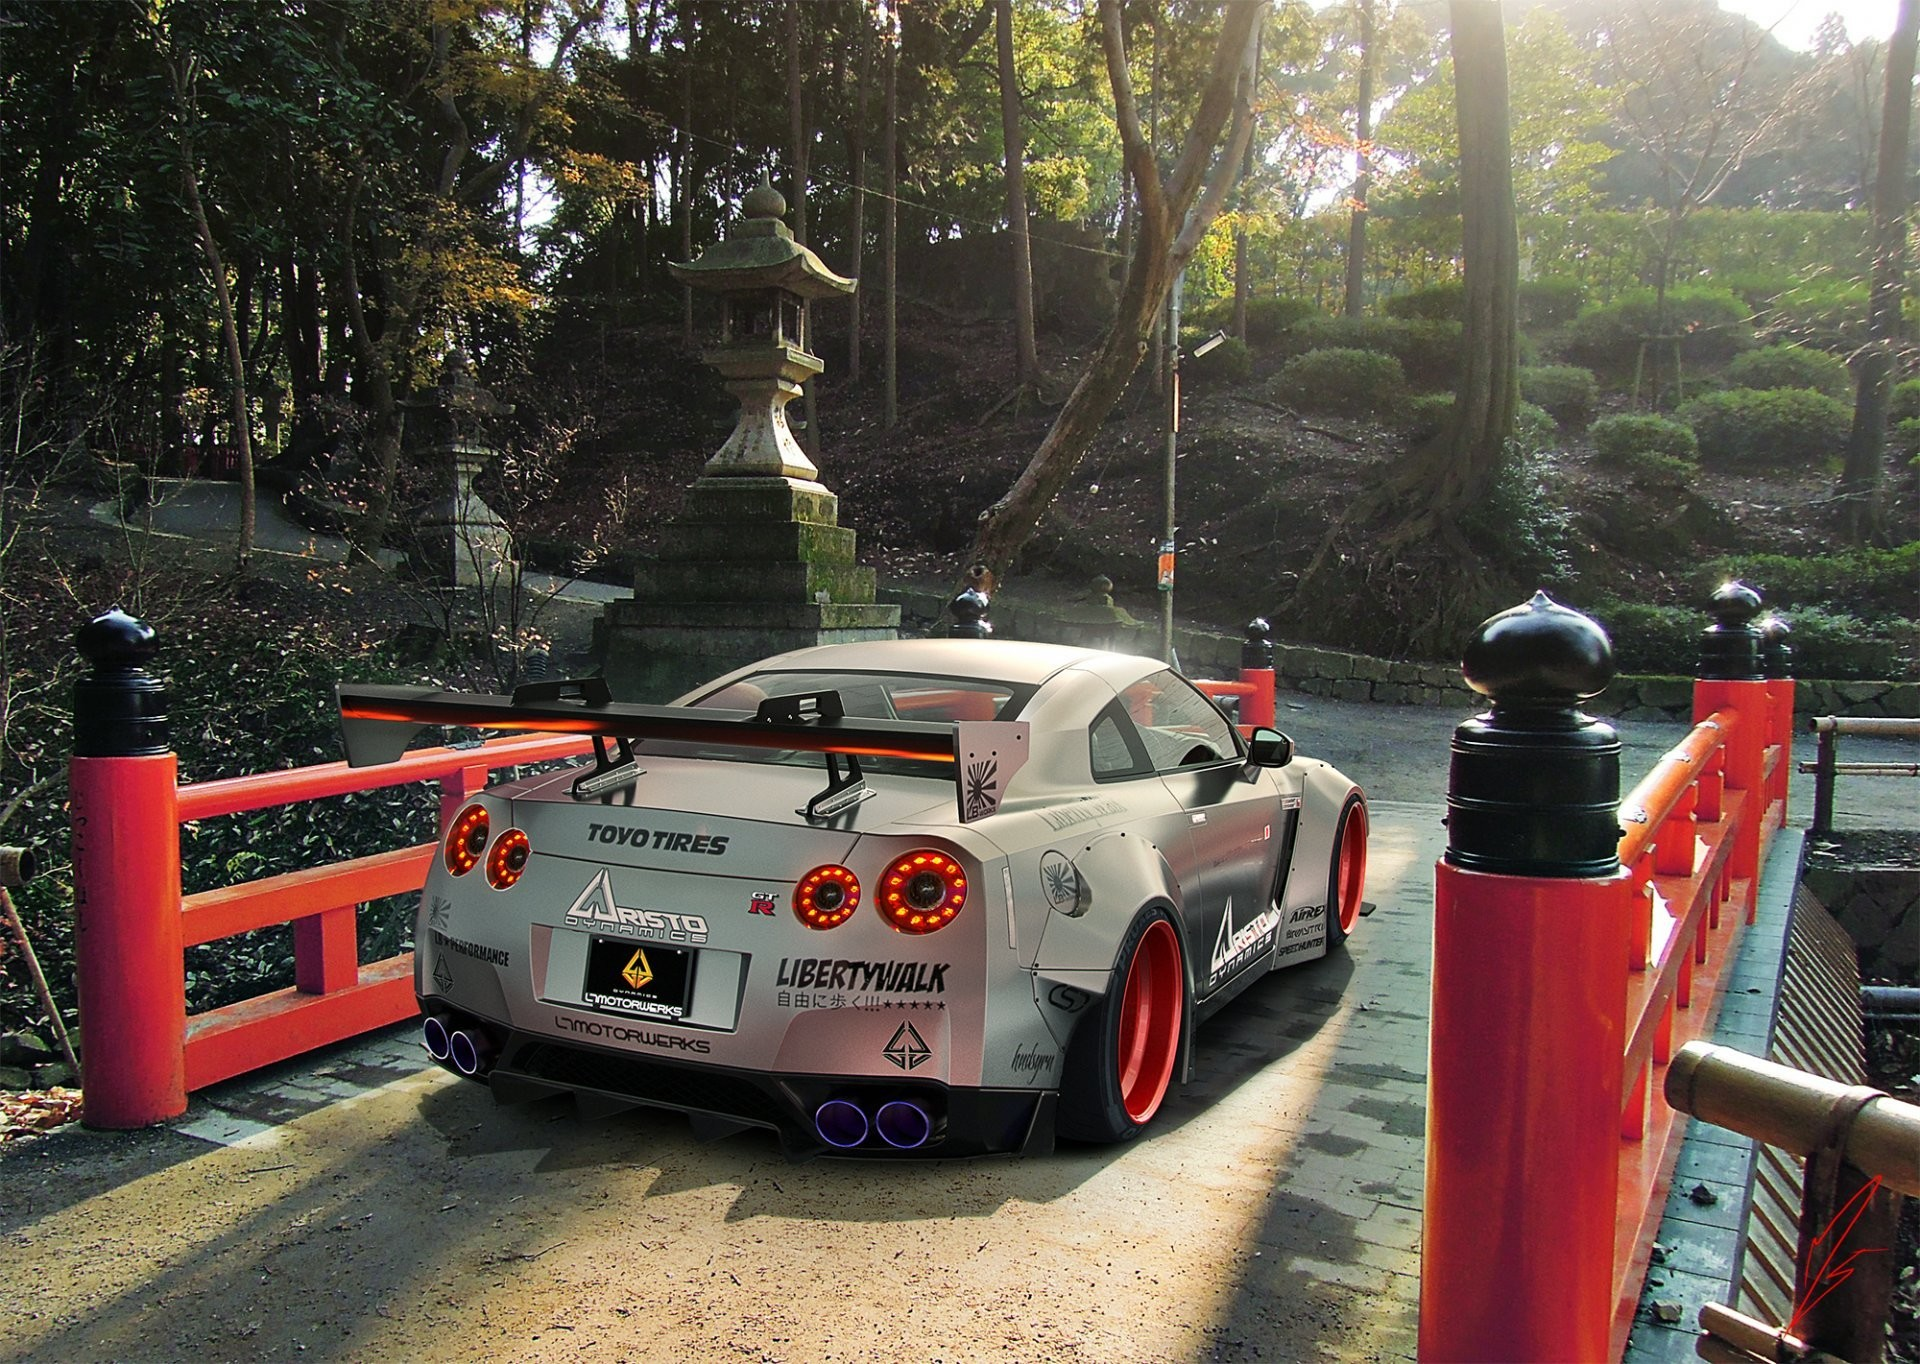 1920x1364 nissan gtr r35 liberty walk silver rear japan sport car